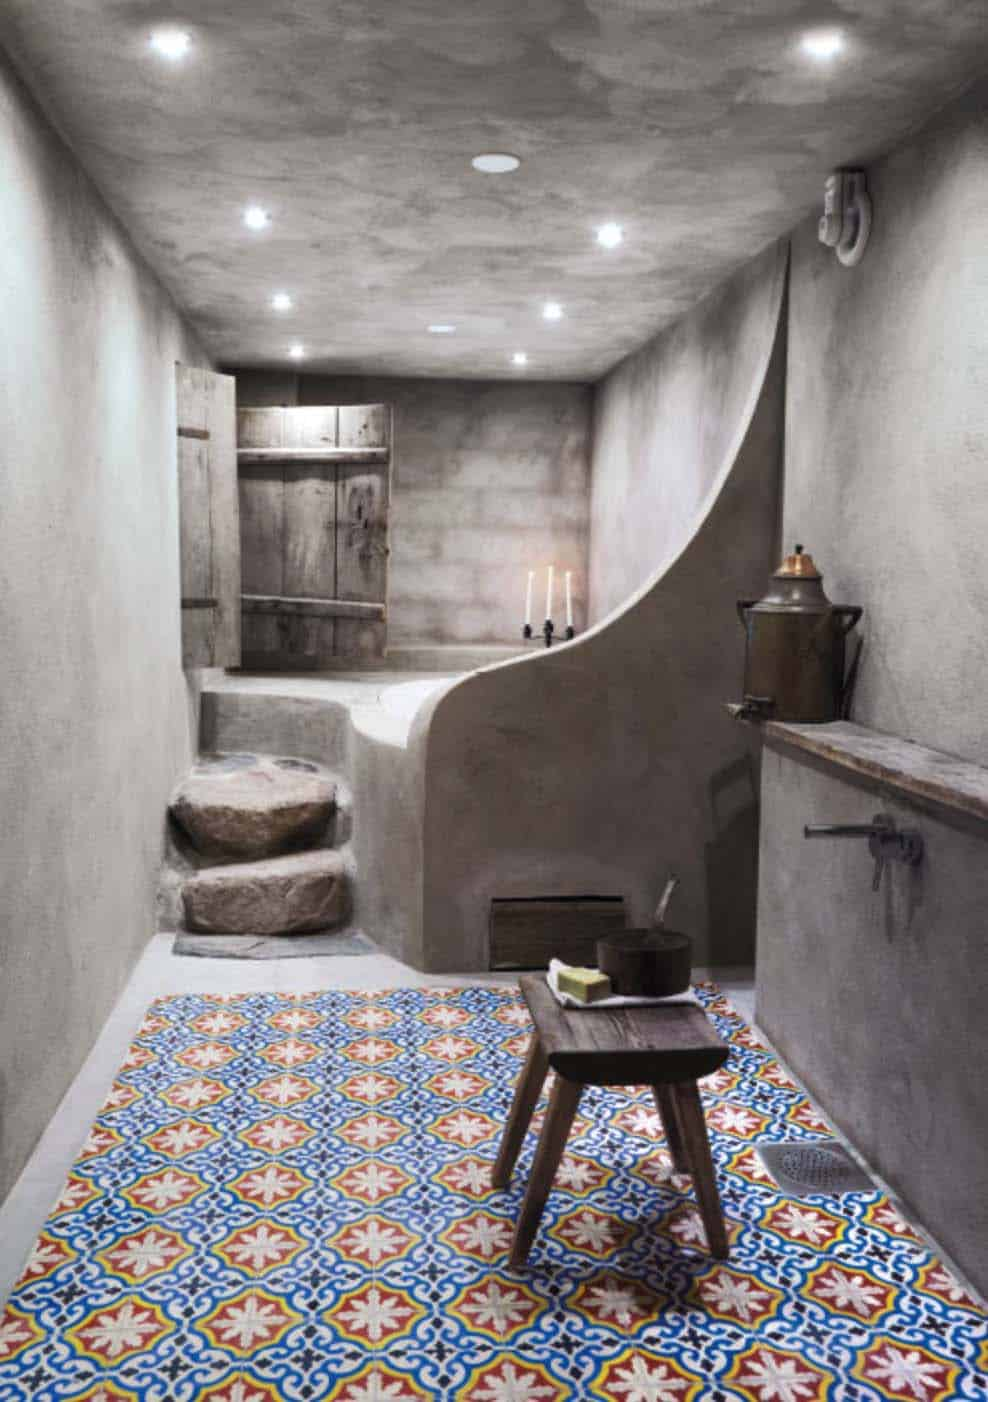 Concrete Bathroom Designs-37-1 Kindesign